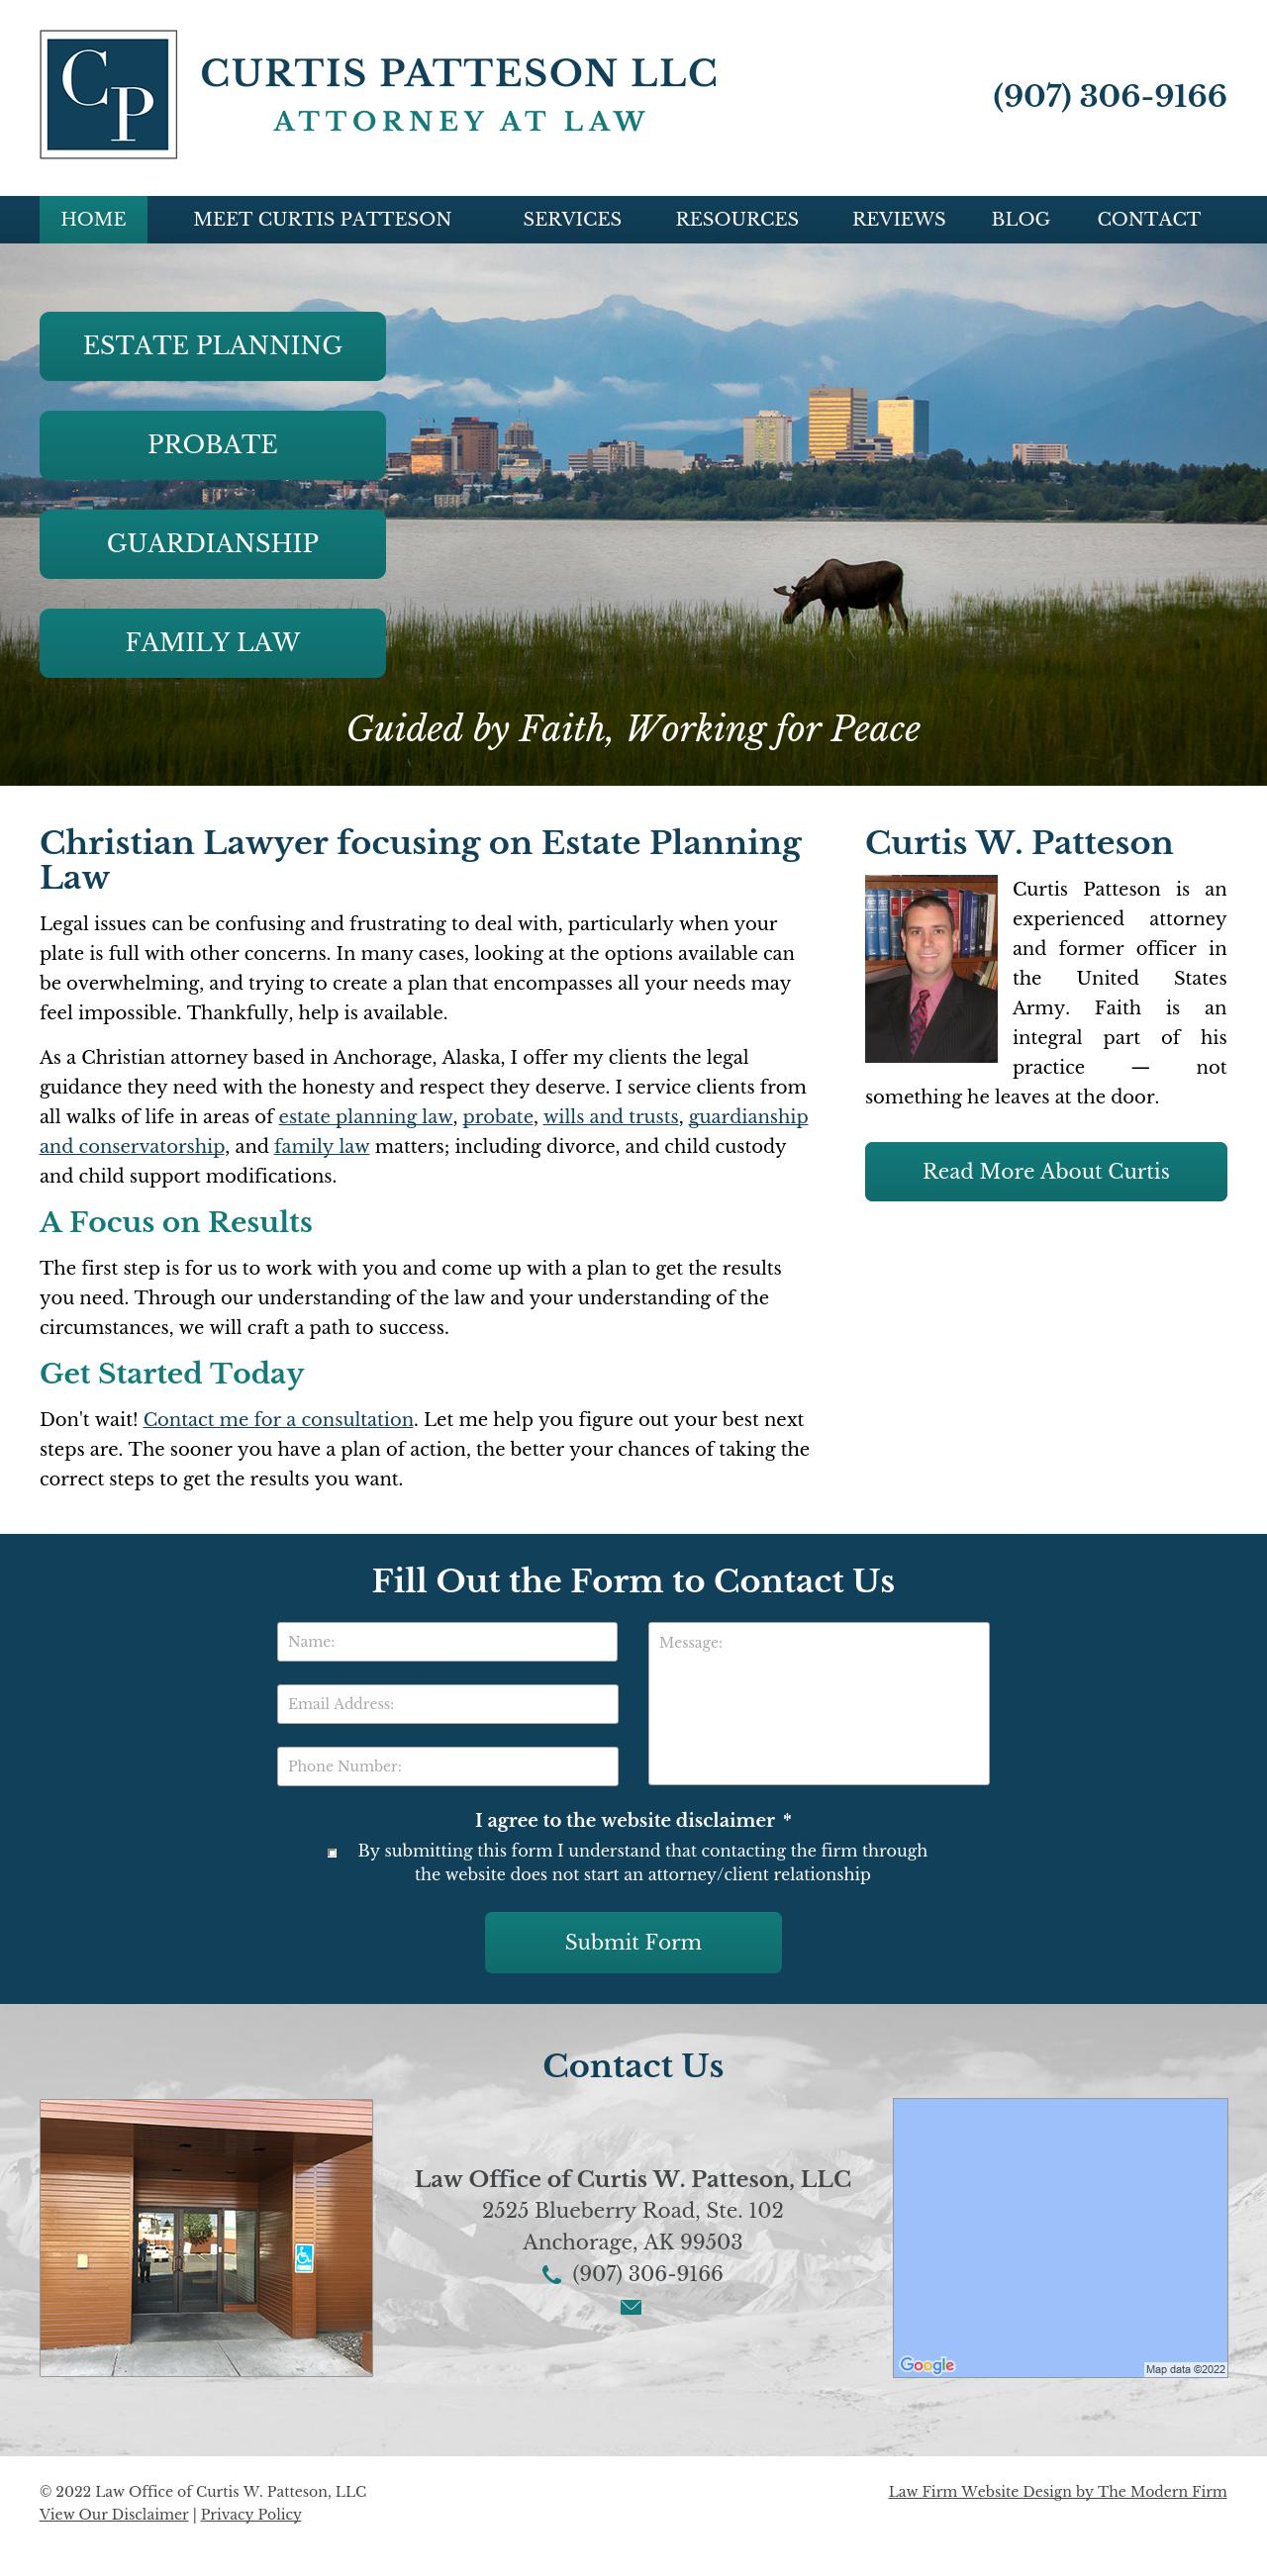 Patteson Curtis W Law Office of LLC - Anchorage AK Lawyers